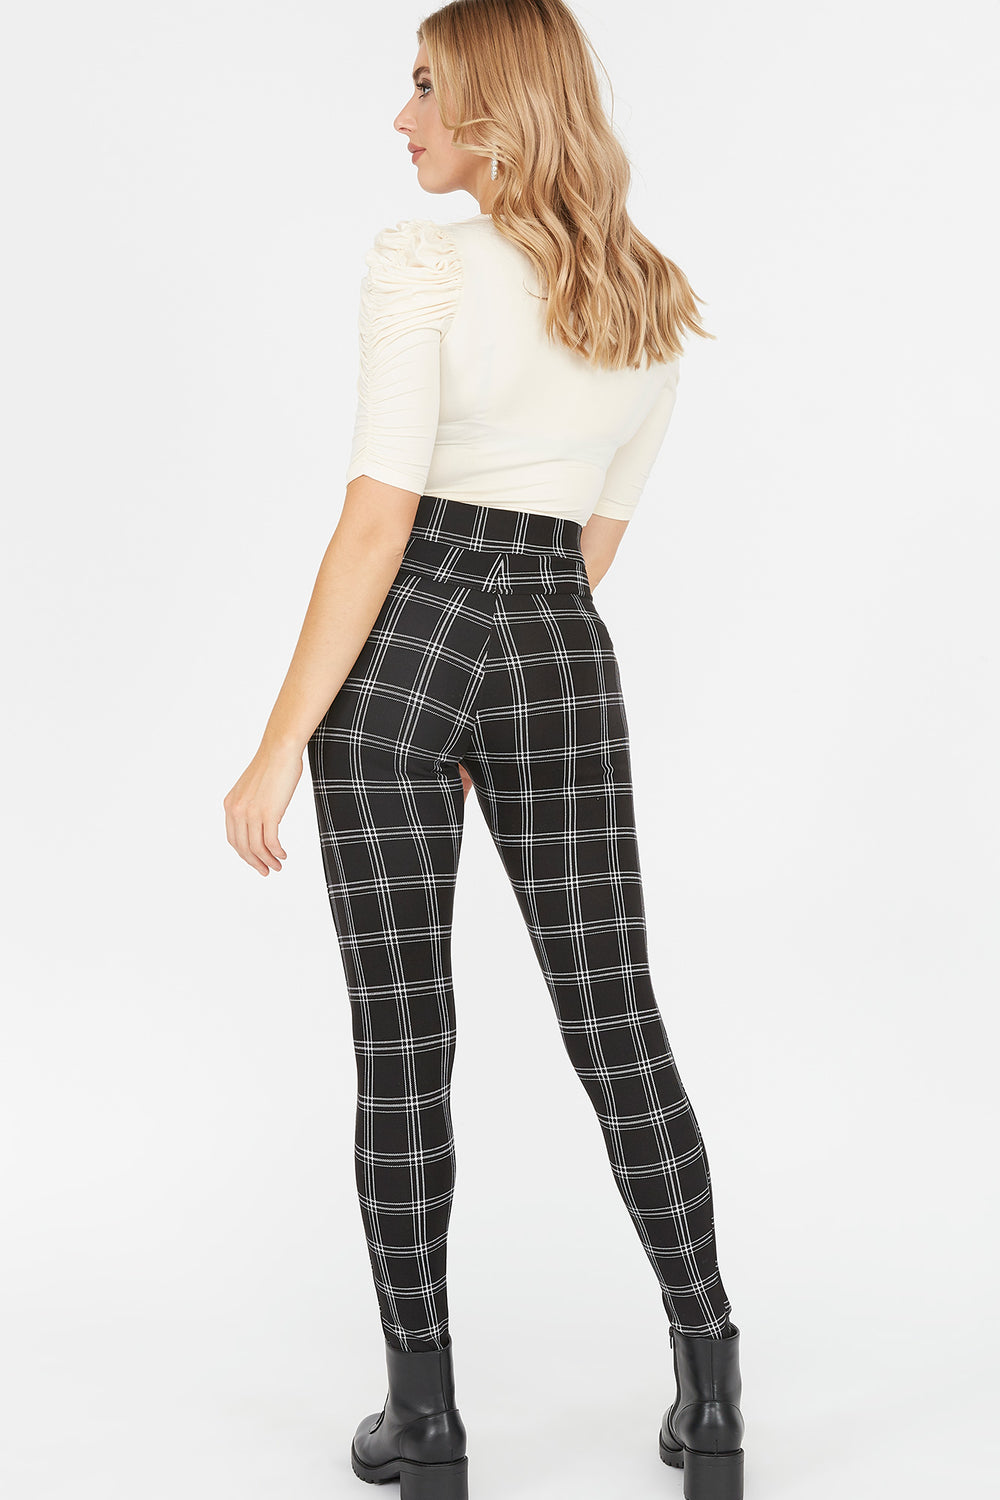 Soft High-Rise Printed Zip Legging Plaid